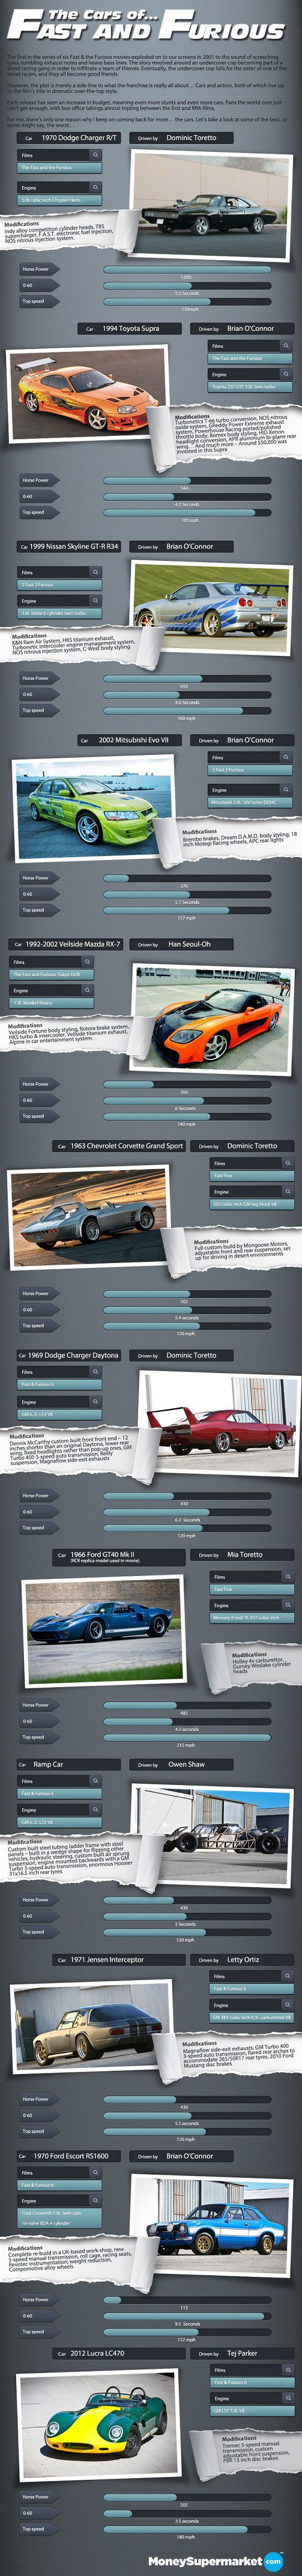 17 best images about cars breh on pinterest cars acura nsx and wheels